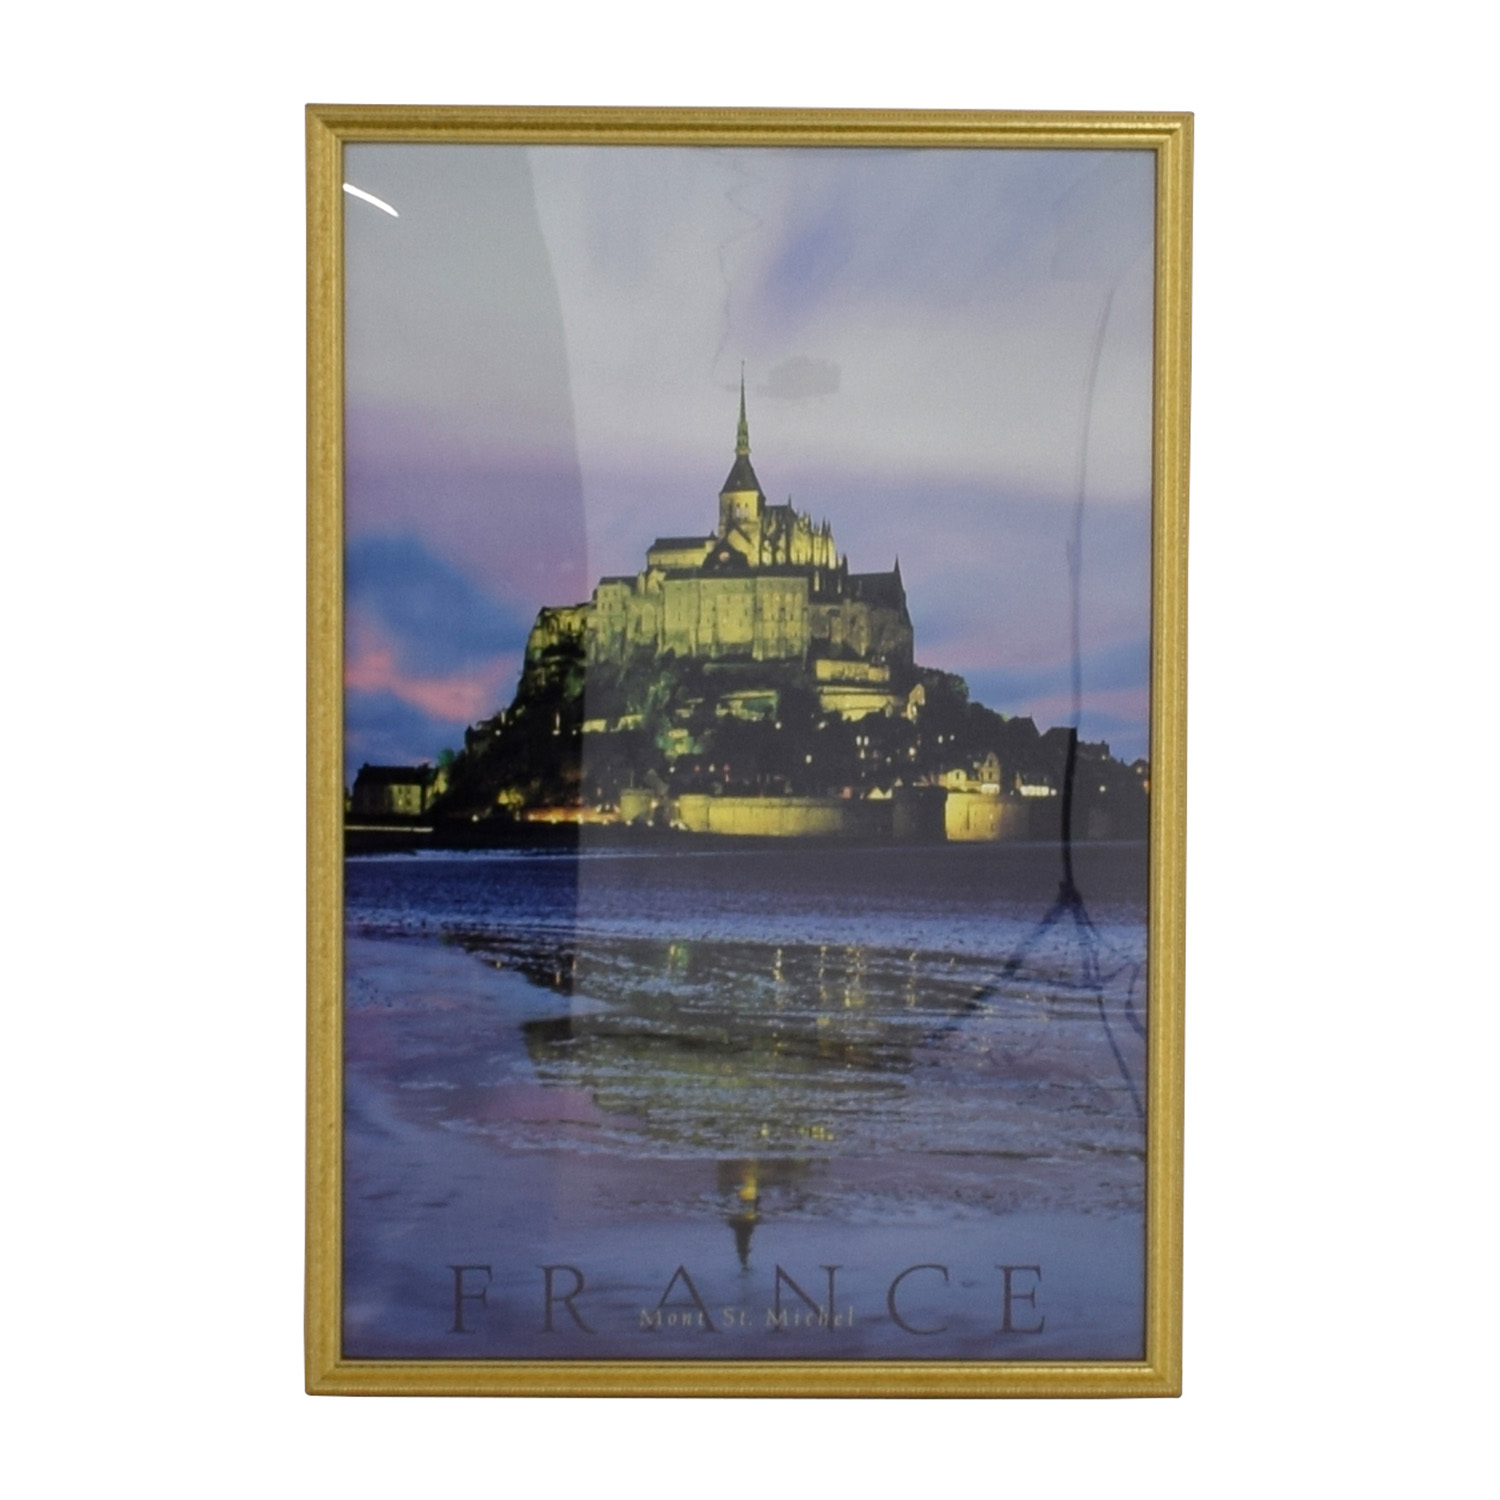 Mont St. Michel Normandy France Picture used